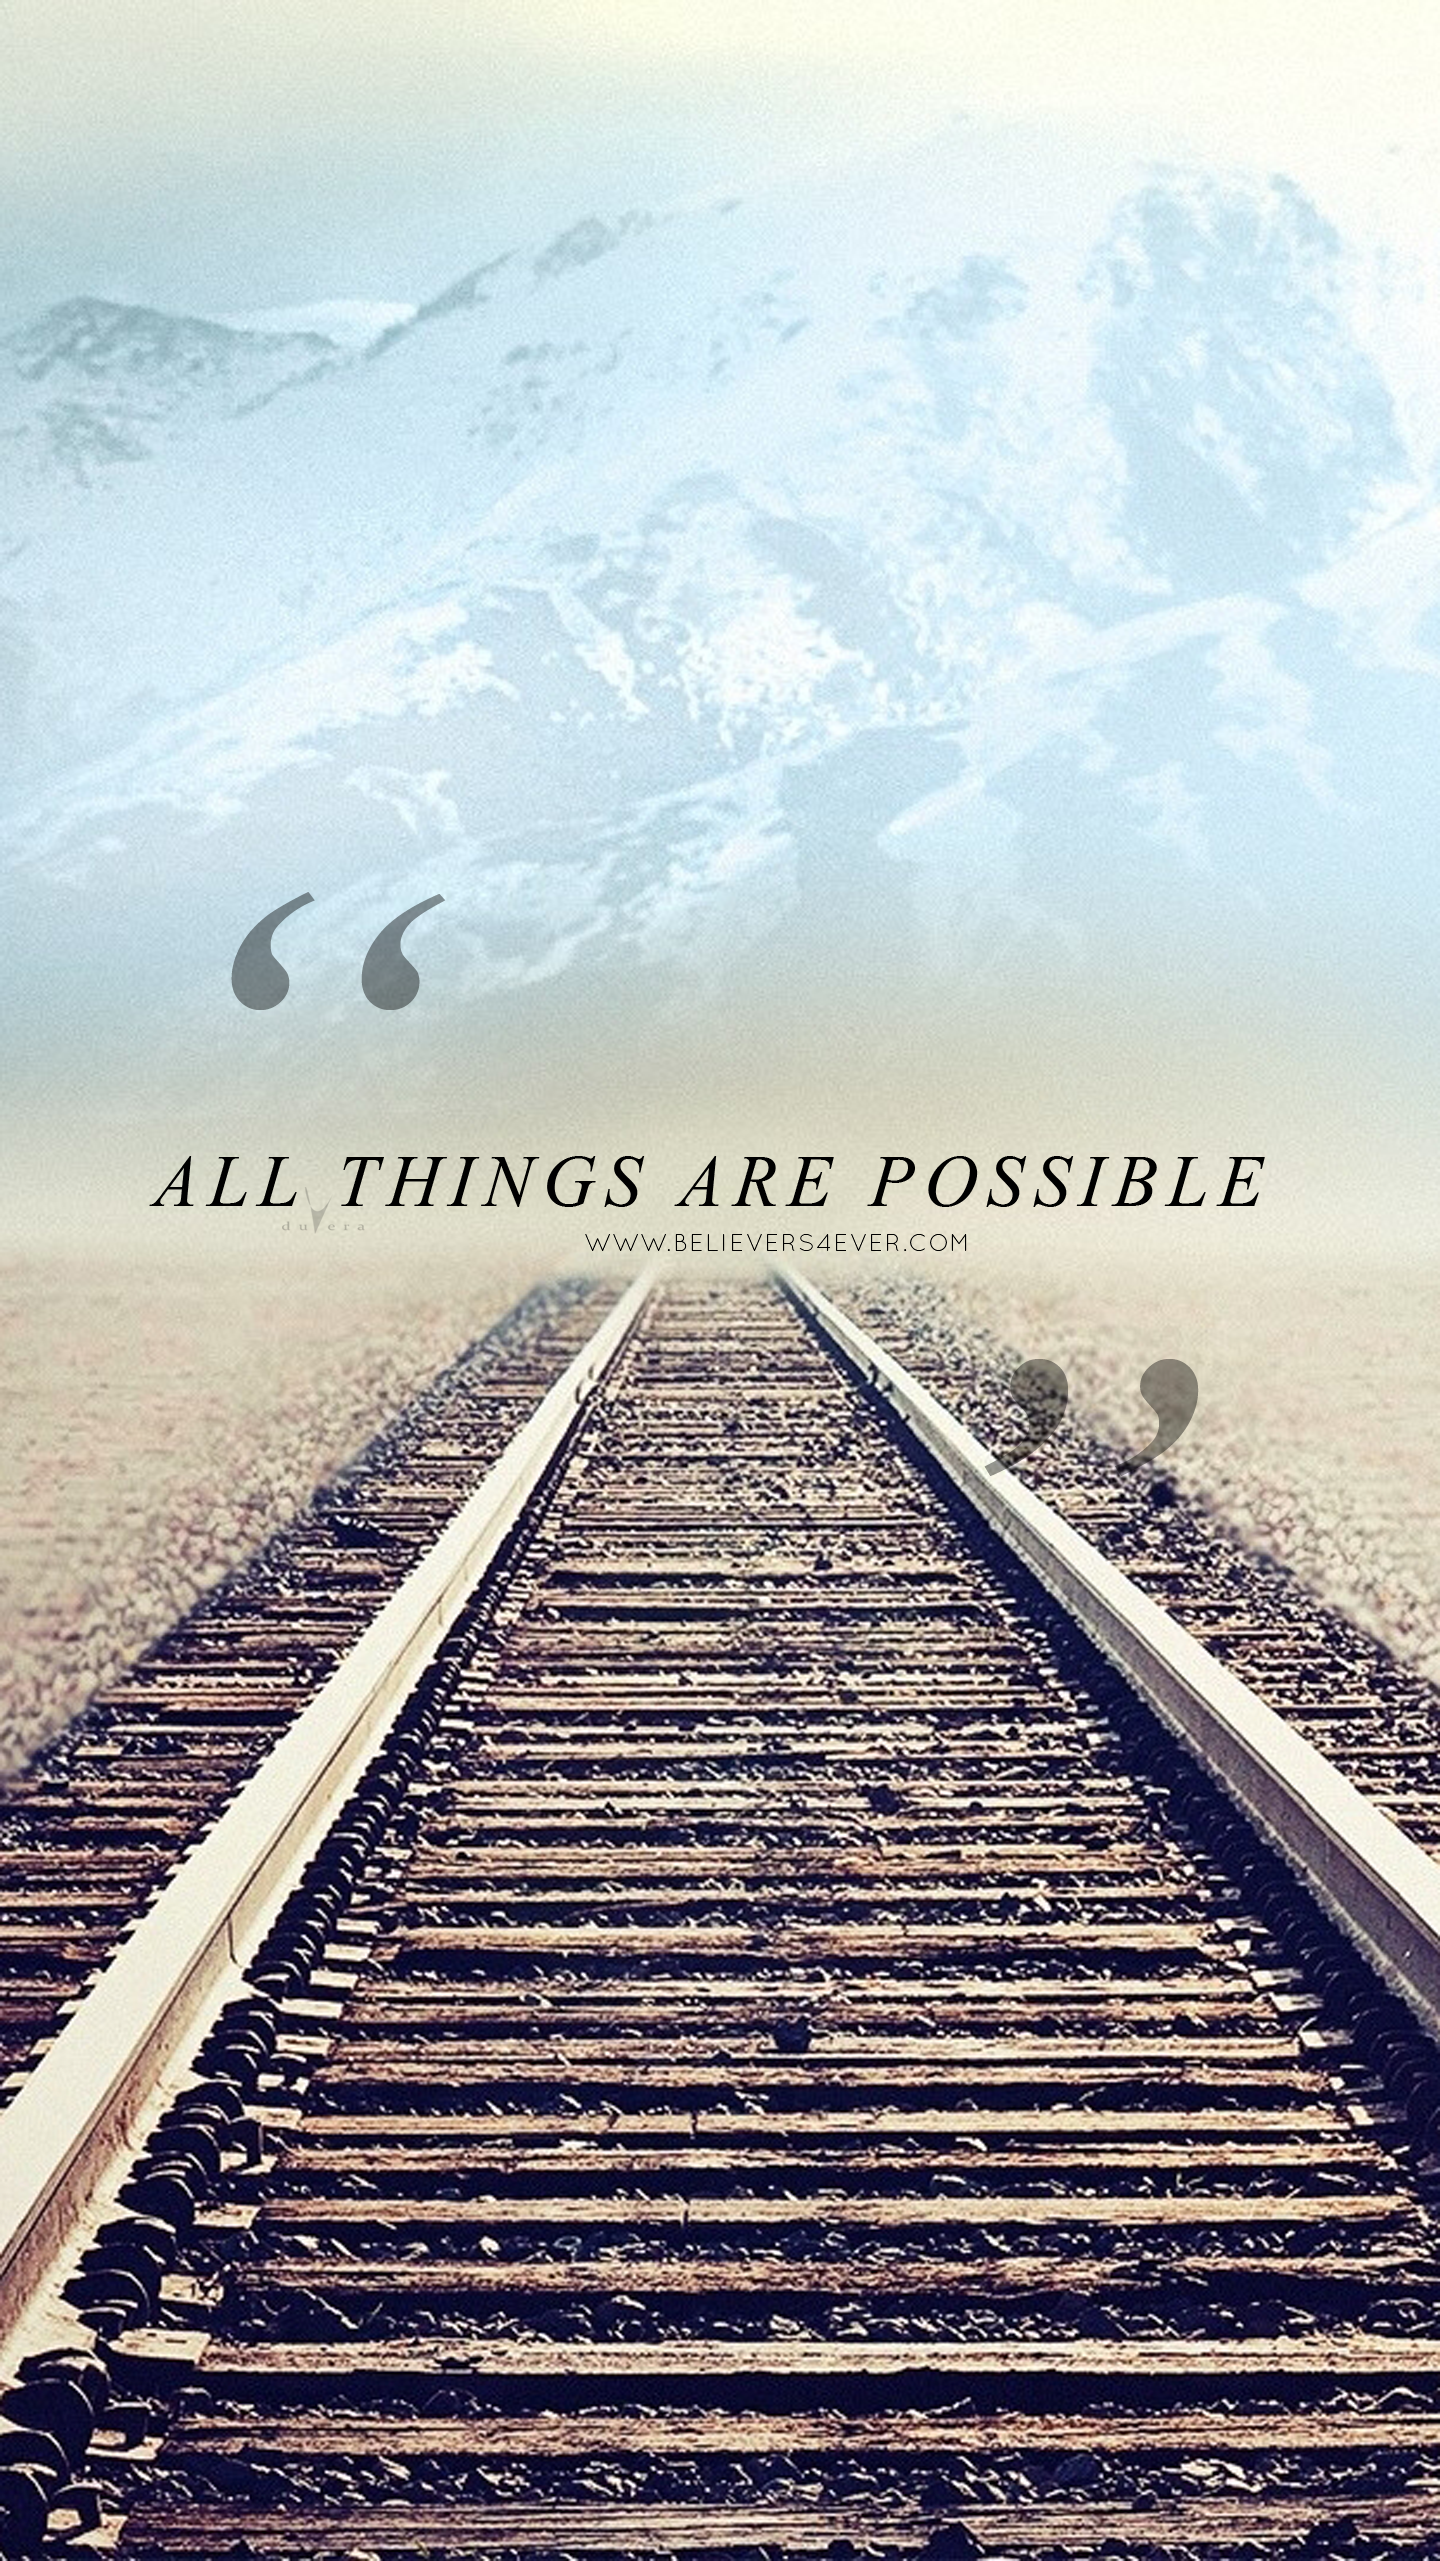 All Things Are Possible Believers4ever Com Wallpaper Bible Scripture Wallpaper Lock Screen Wallpaper